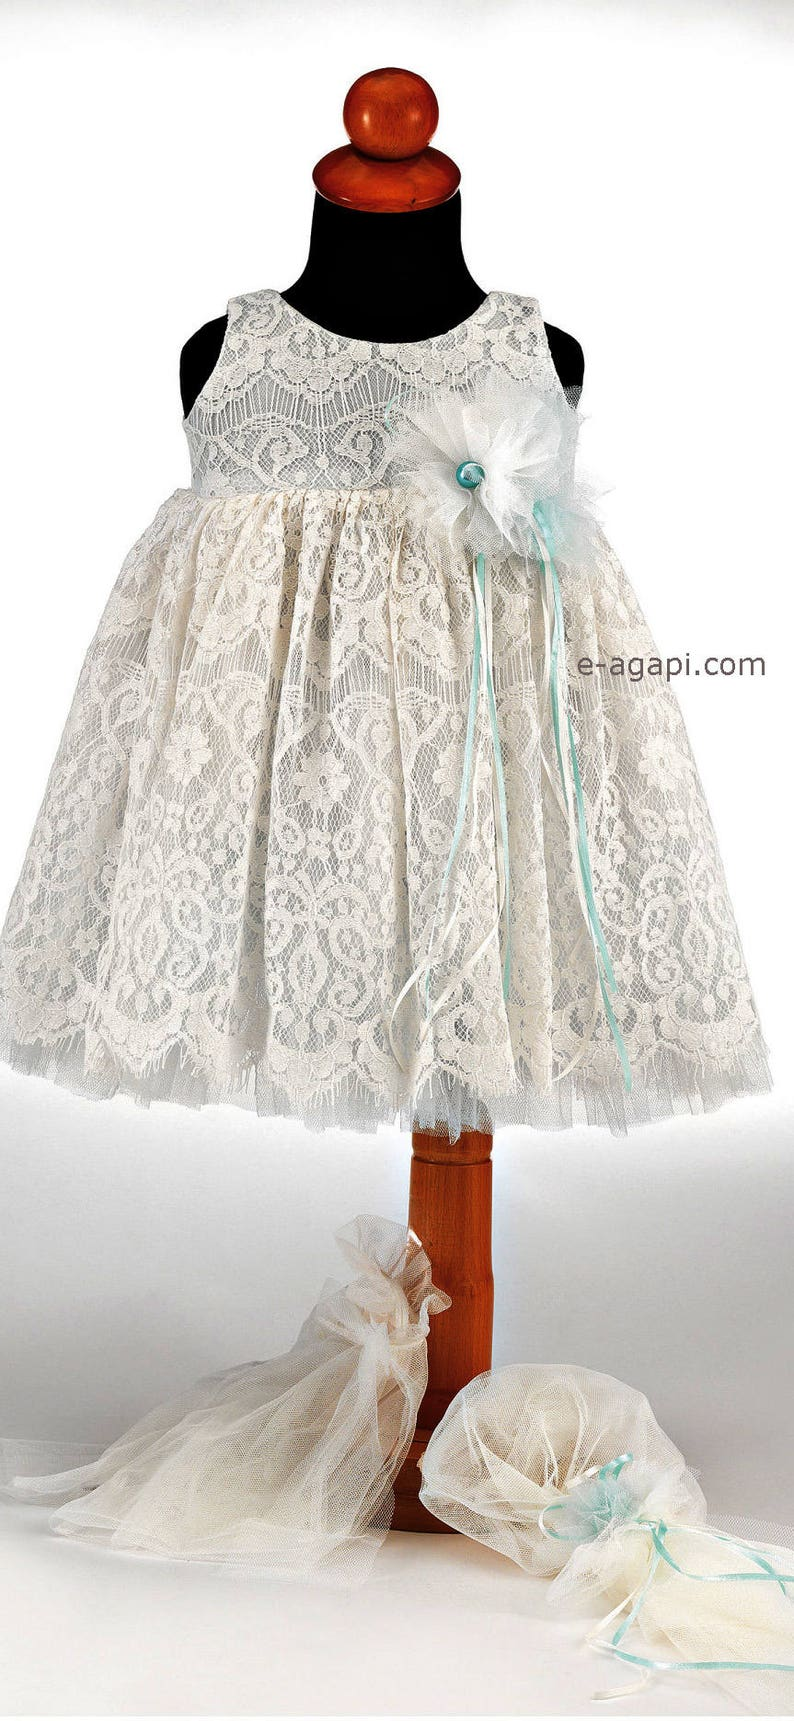 fdf8dc74ff549 Baby girl wedding dress White christening dress Lace wedding flowergirl  Greek set special ocasion Girl white greek outfit shoes Party dress